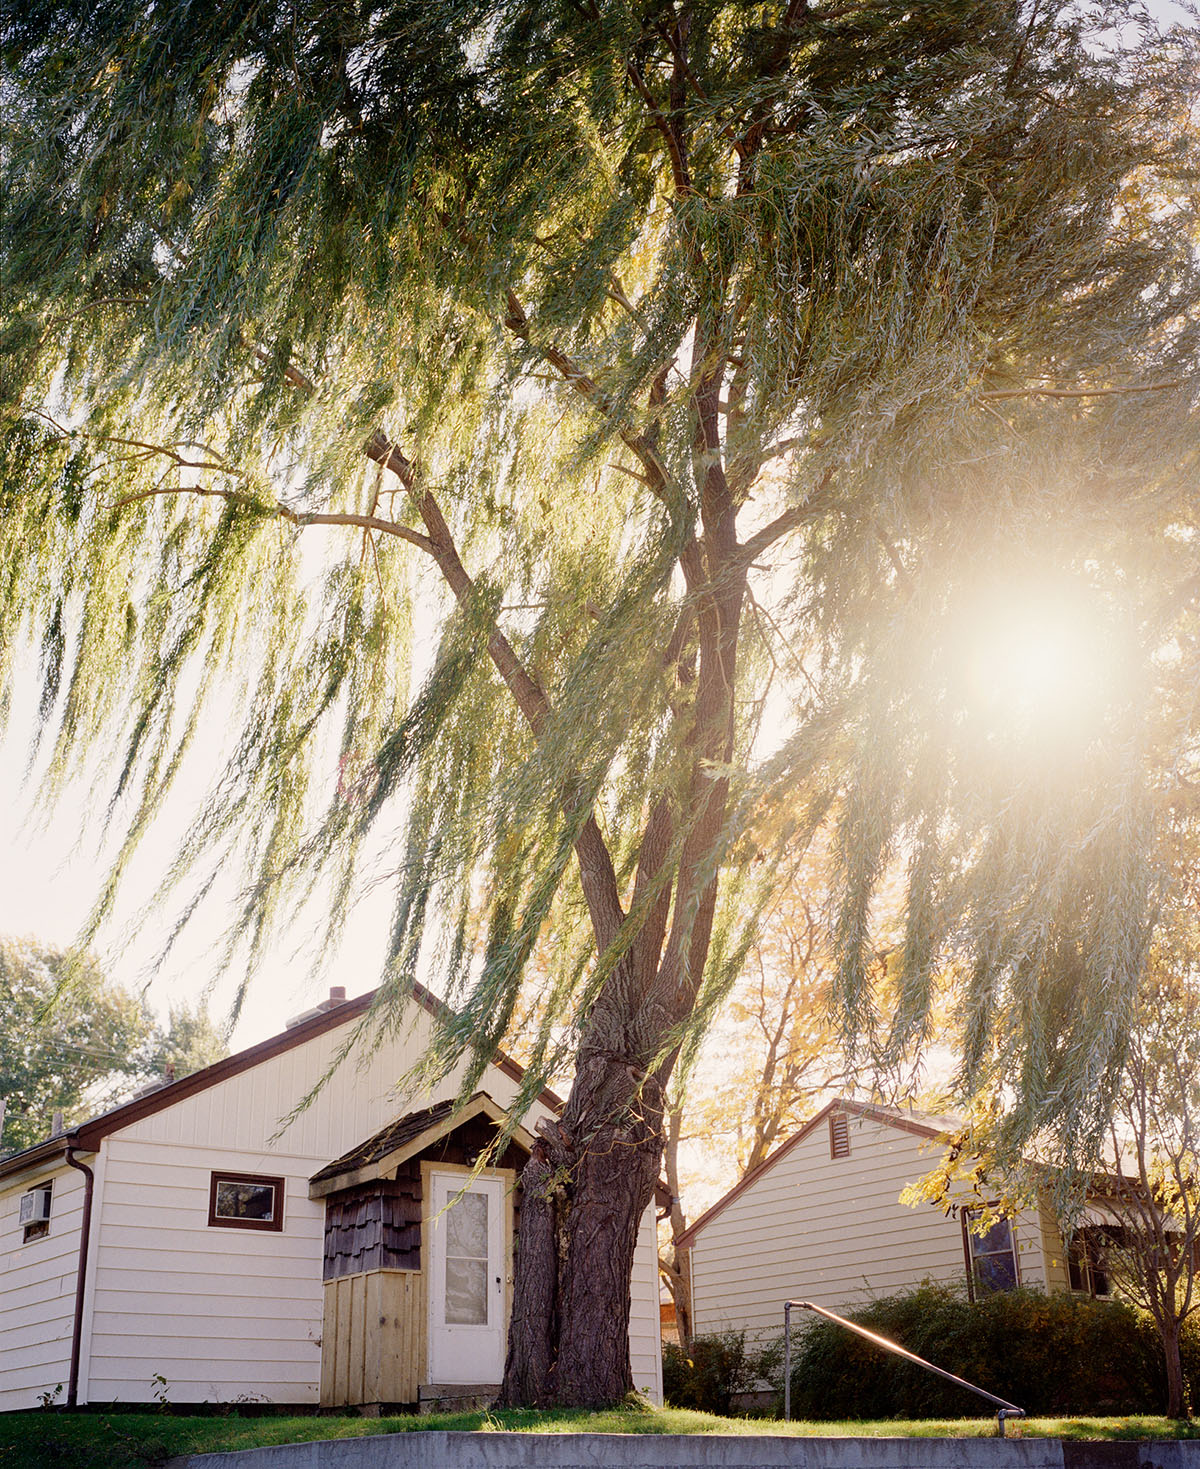 A large tree in front of a house, with the sun trying to peak through the leaves.